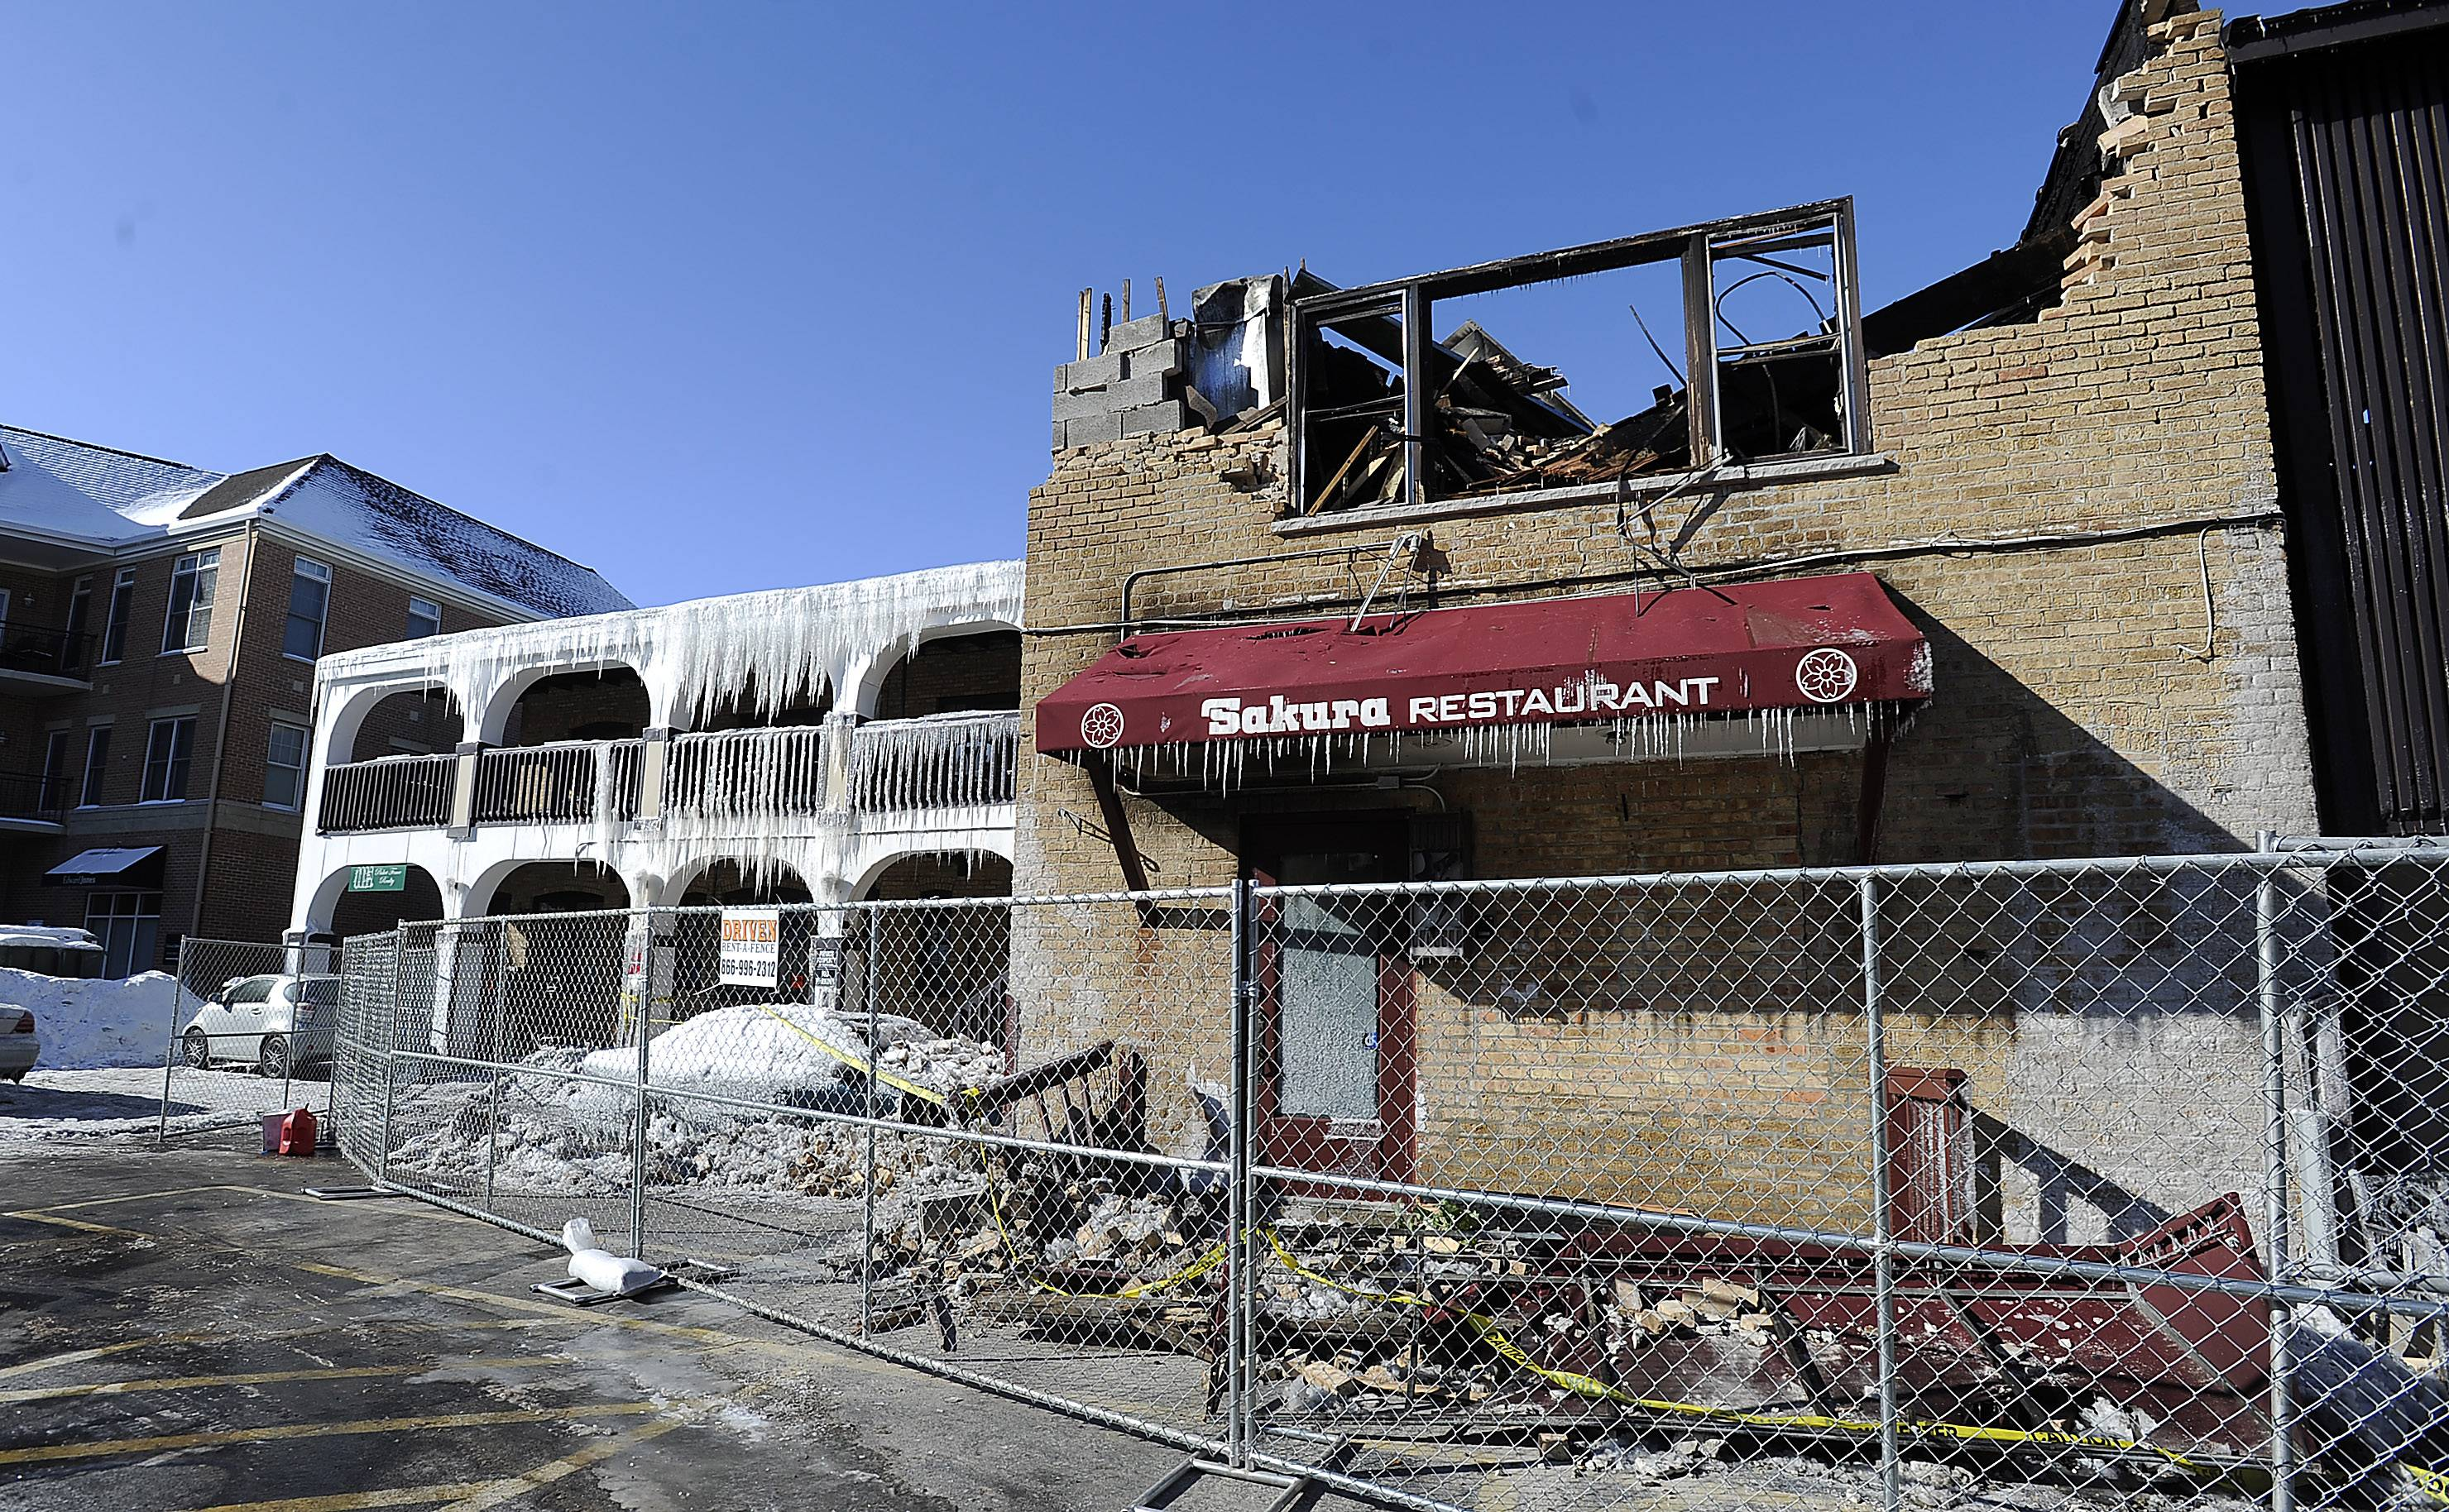 The Sakura Restaurant was one of the businesses hit hard by the early morning weekend fire in Mount Prospect. Demolition could begin as early as today on part of the fire-ravaged historic downtown Mount Prospect building that formerly housed Sakura Japanese Restaurant, officials have said. Full story.